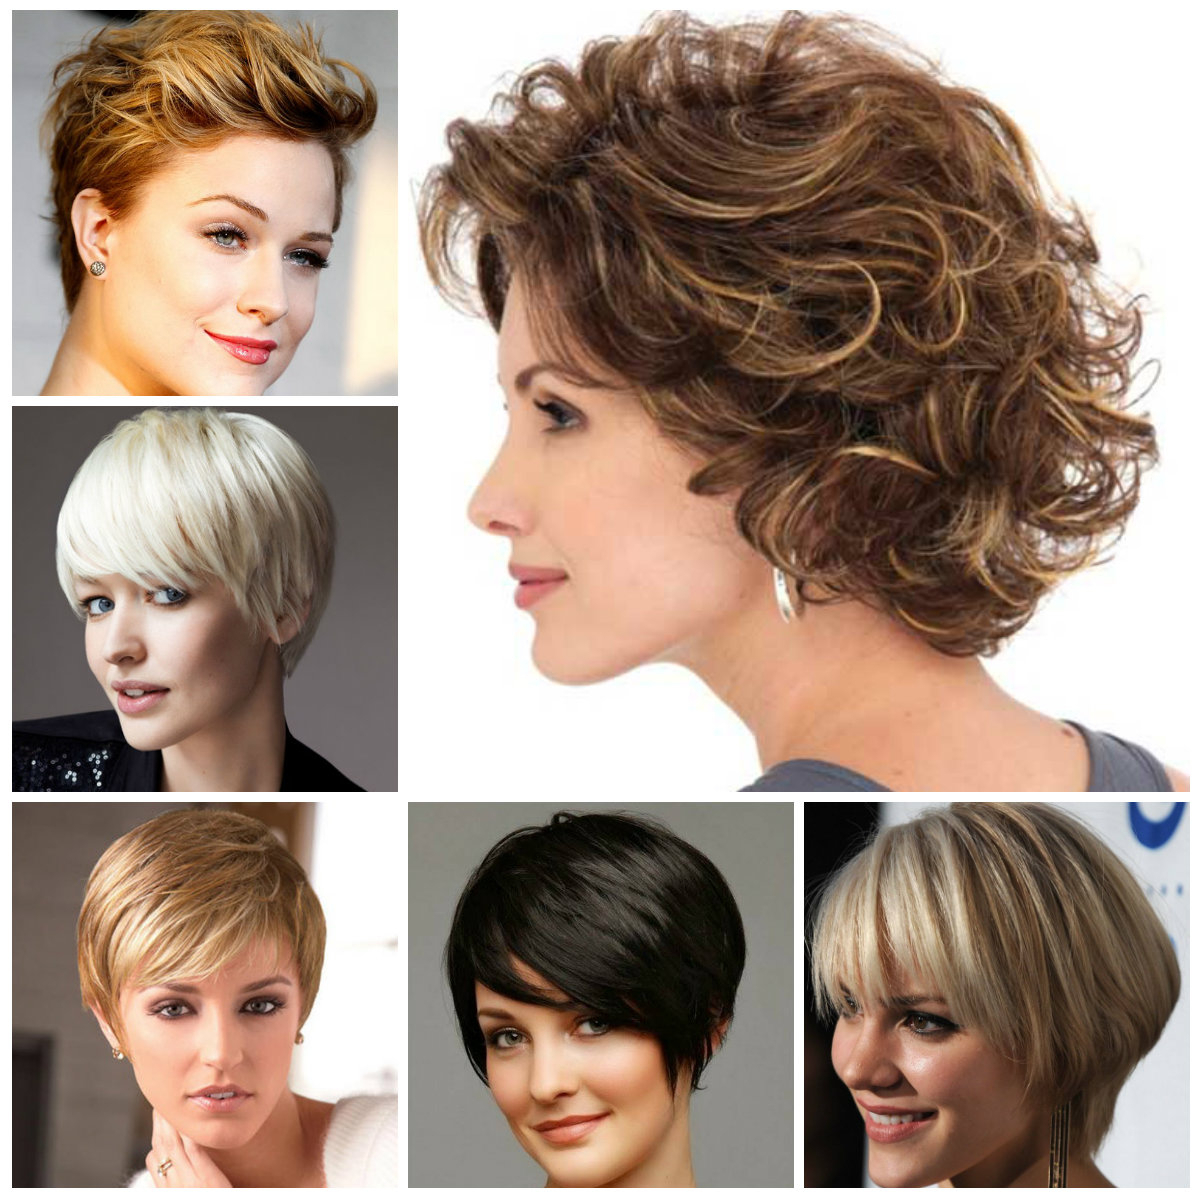 Short Layered Hairstyle Ideas For 2019 | Hairstyles For Women 2019 Pertaining To Long Hair With Short Layers Hairstyles (View 24 of 25)